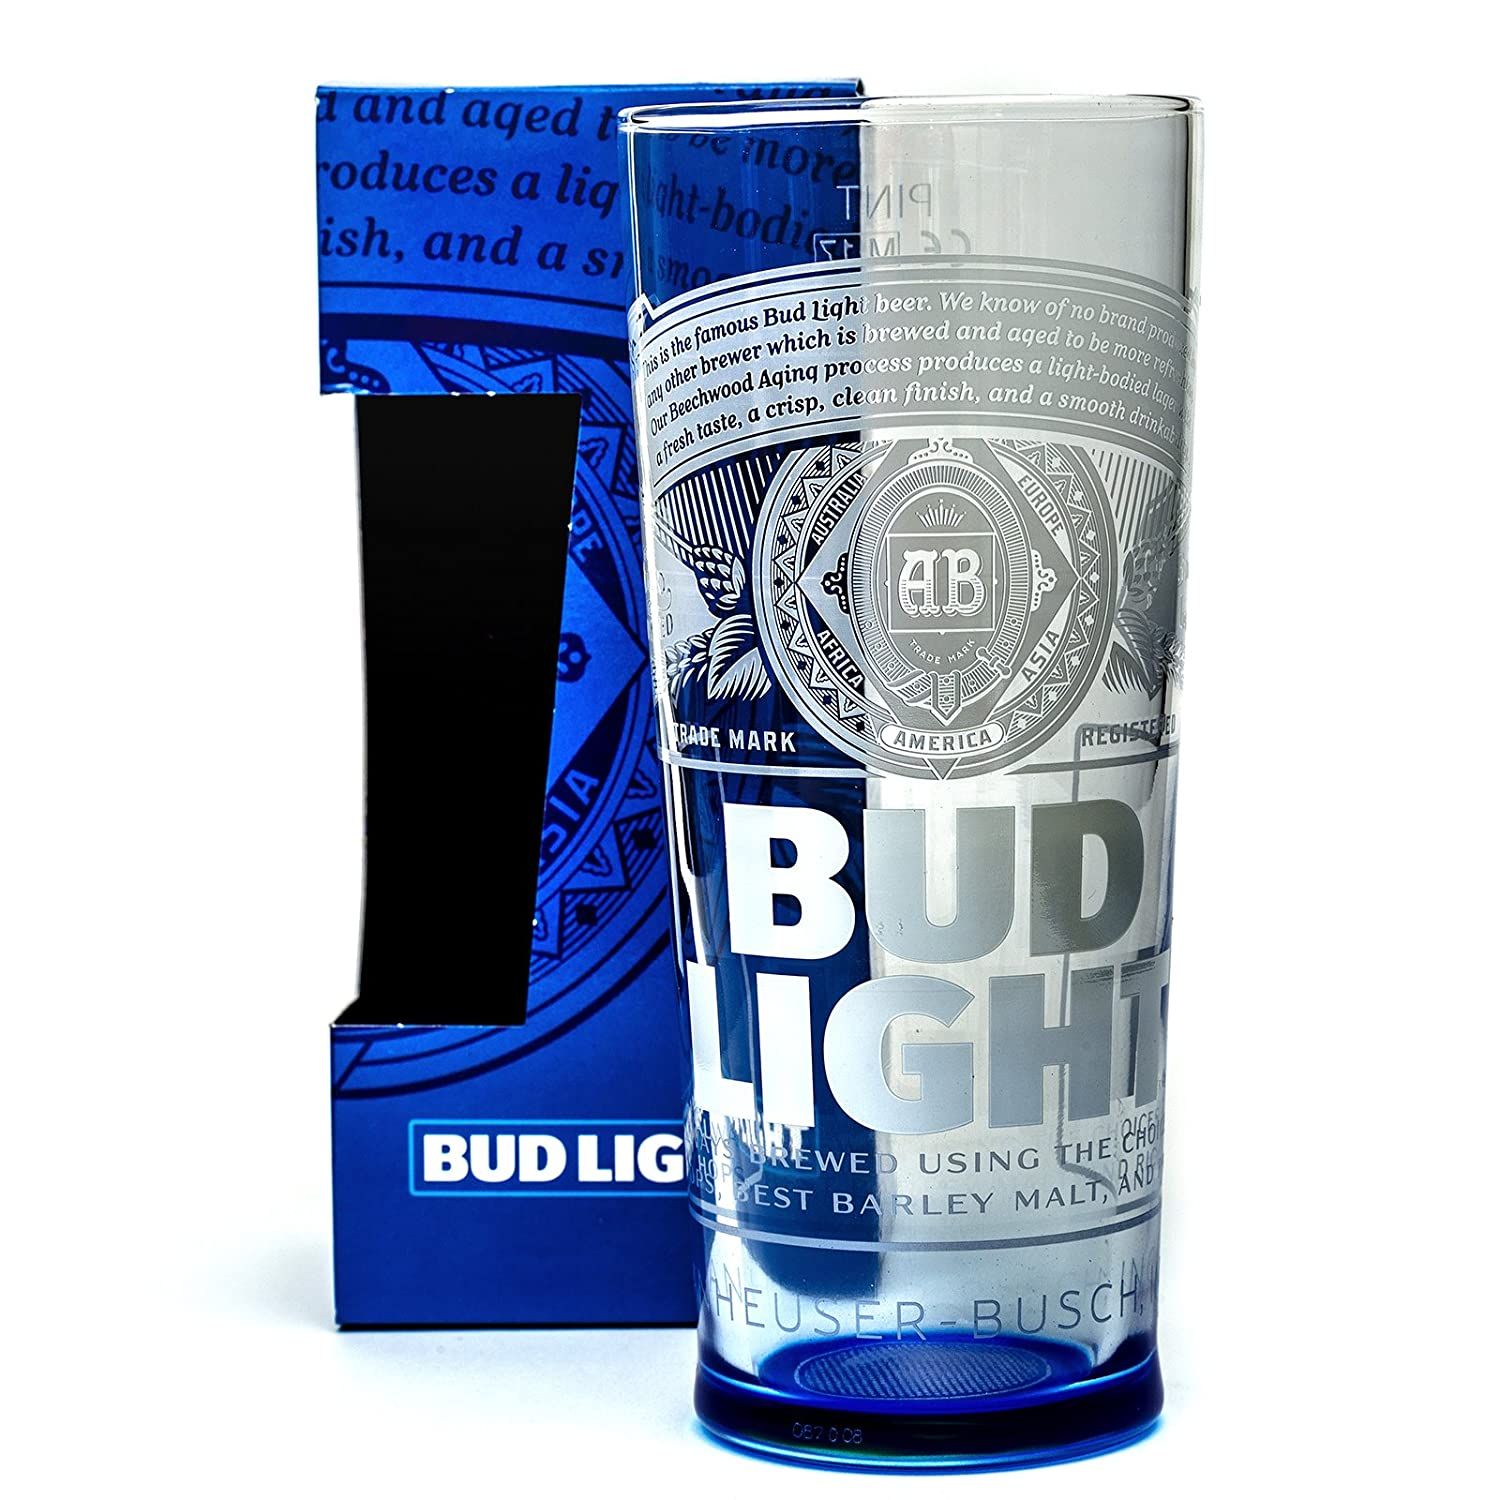 Budweiser Bud Light Beer Glass 1 Pint Boxed Home Bar Pub Gift Present Mancave Party Celebration BBQ